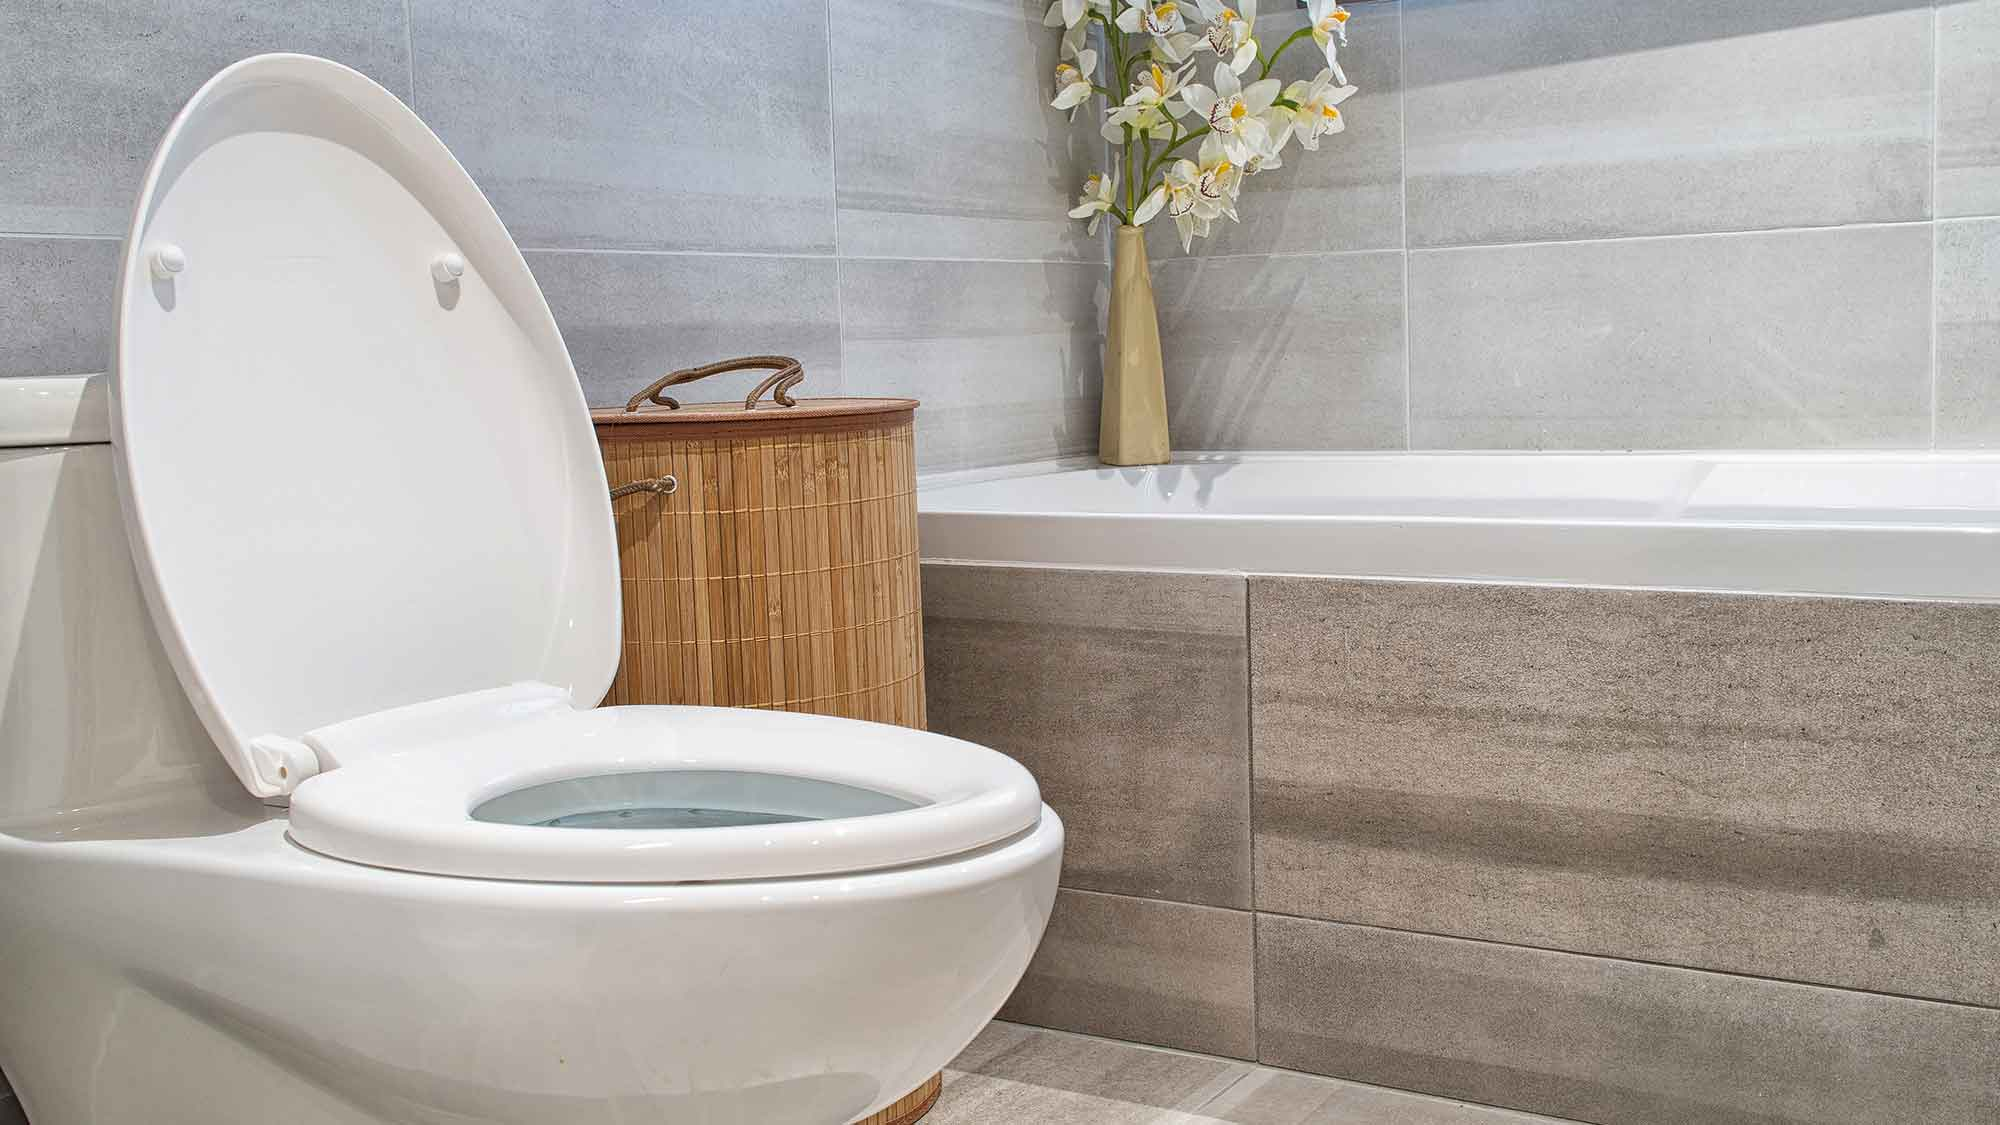 blocked toilet repair essex maintenance leigh on sea bathroom